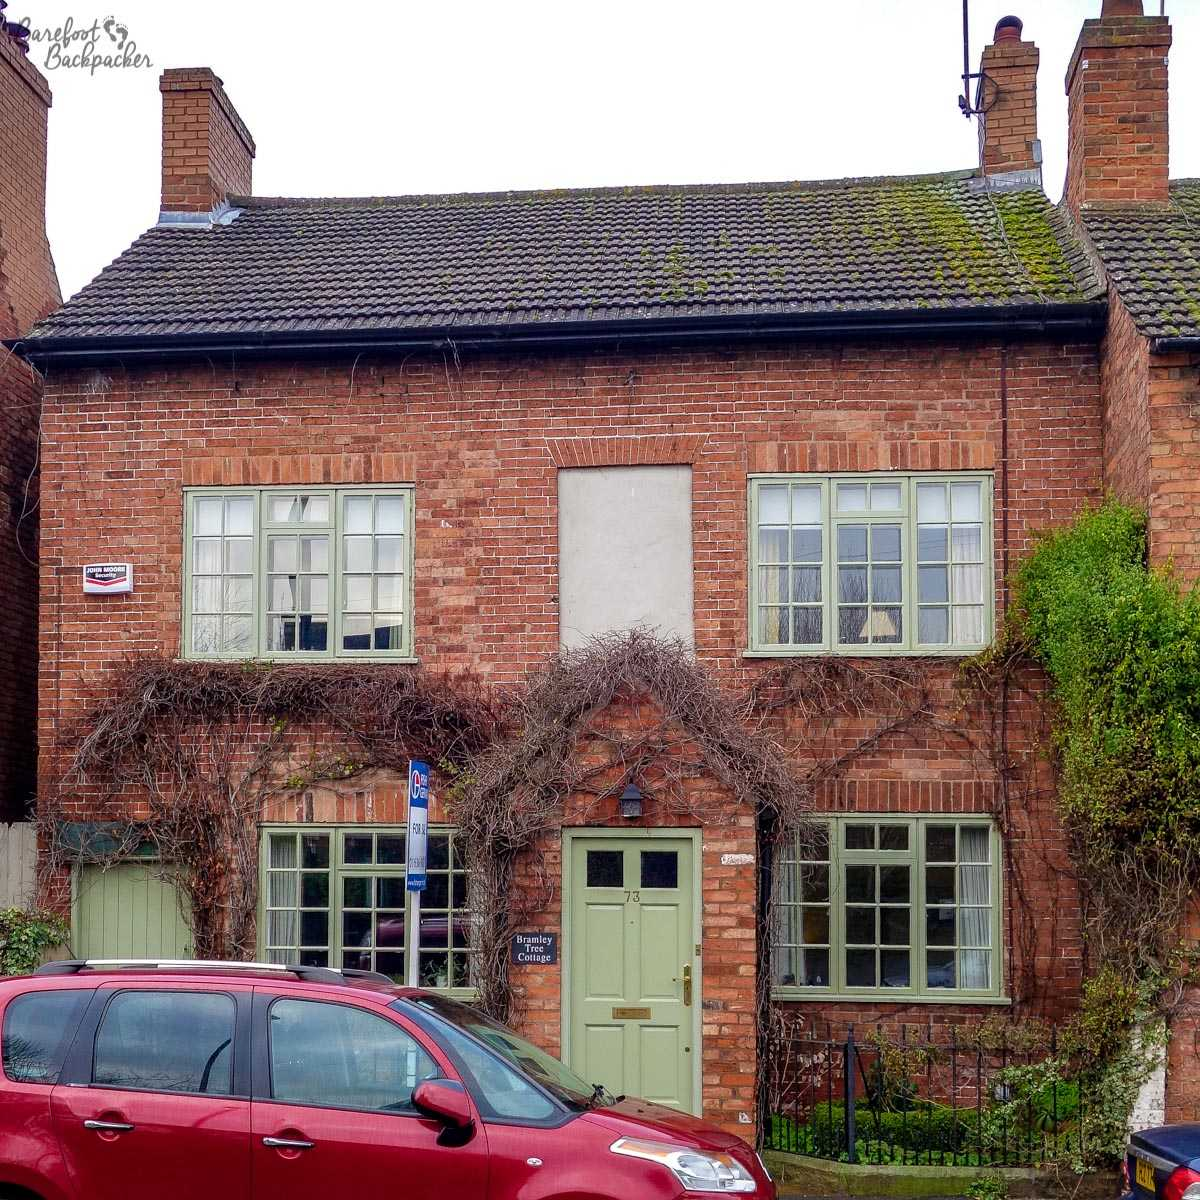 Bramley Tree Cottage in Southwell